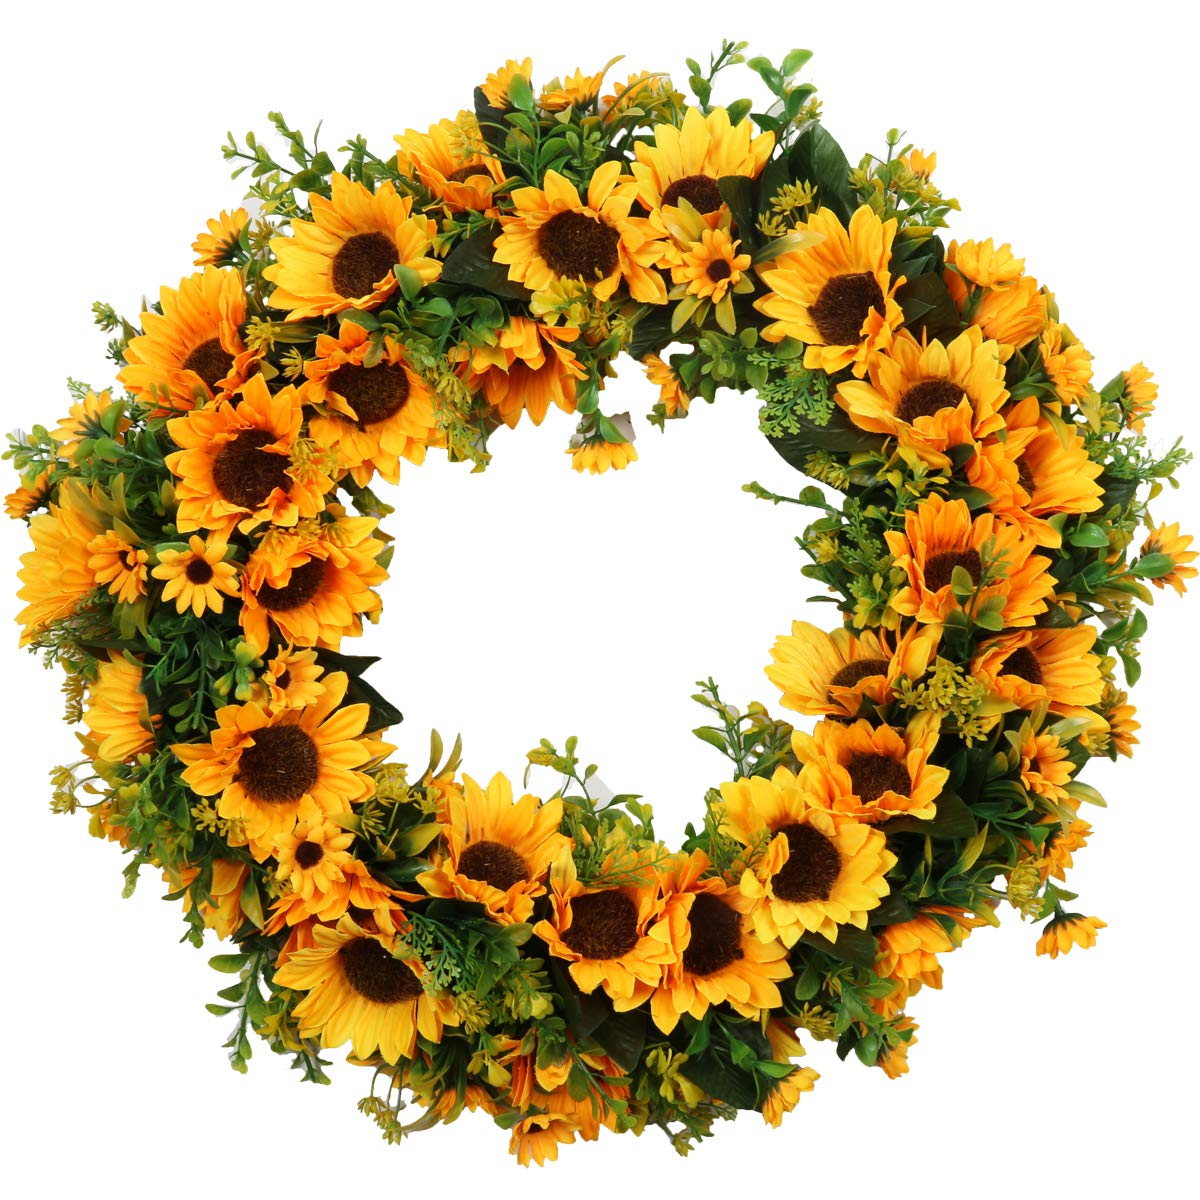 """Pauwer 20"""" Large Sunflower Wreath for Front Door Silk Artificial Yellow Sunflower with Green Leaves Door Wreath Indoor Outdoor (20"""" Sunflower)"""